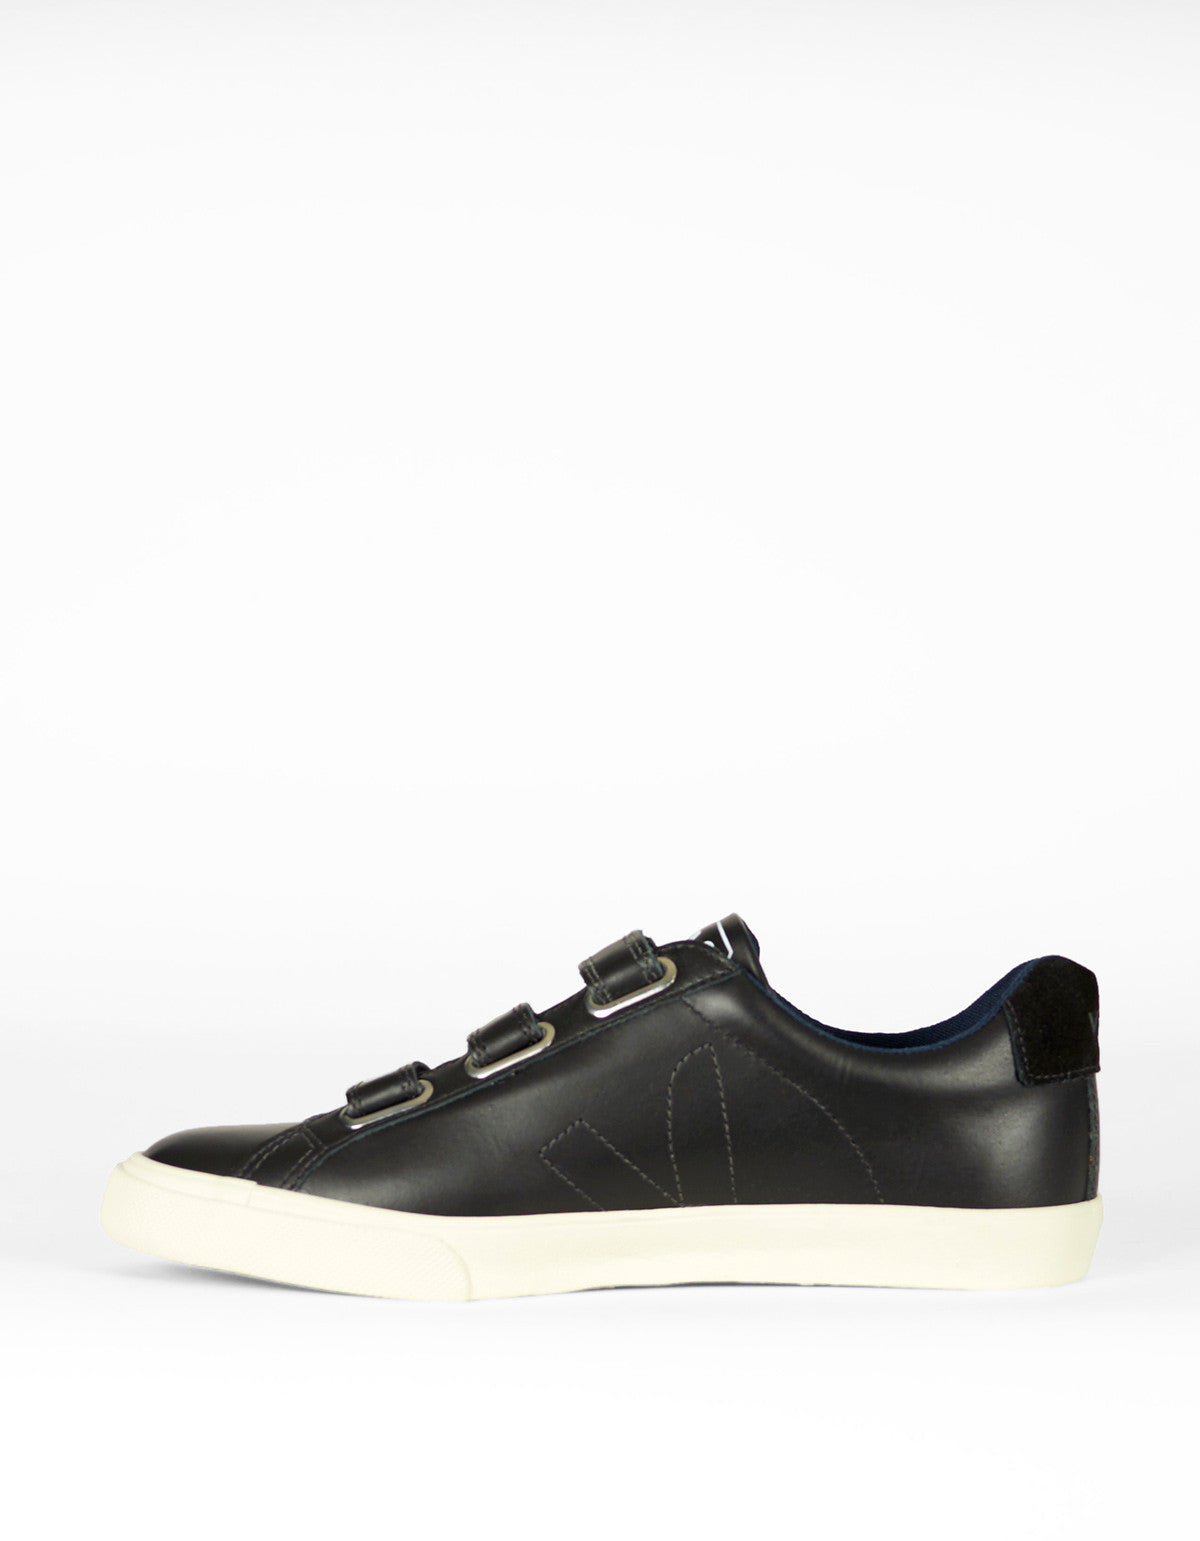 Veja Esplar 3 Locks Leather Sneaker Black Black - Still Life - 3